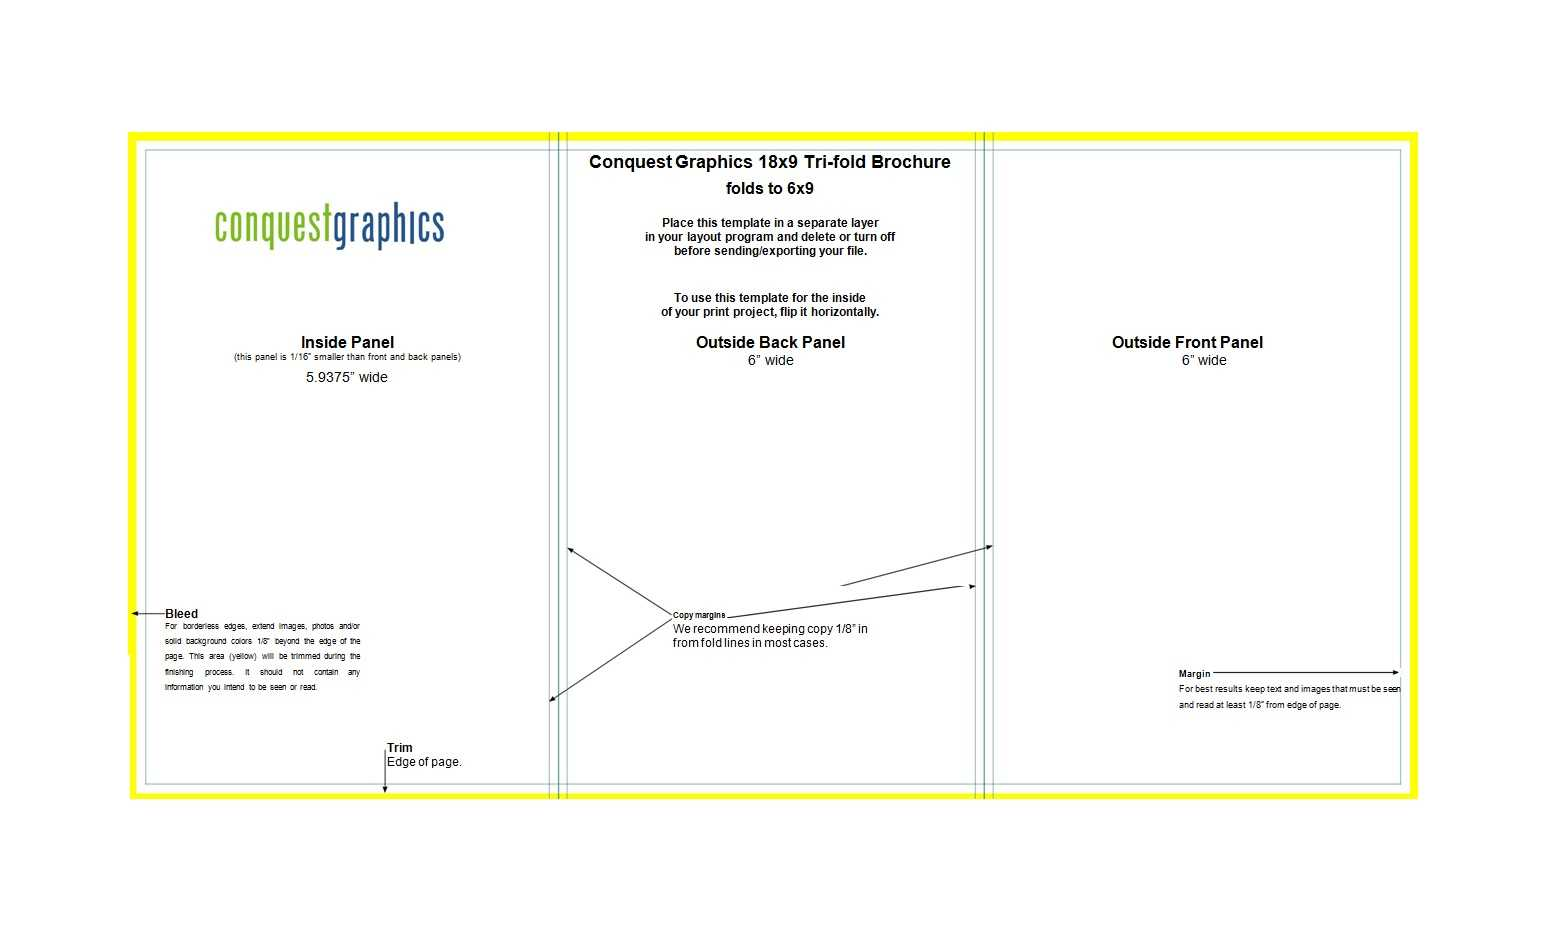 50 Free Pamphlet Templates [Word / Google Docs] ᐅ Template Lab Throughout 6 Sided Brochure Template